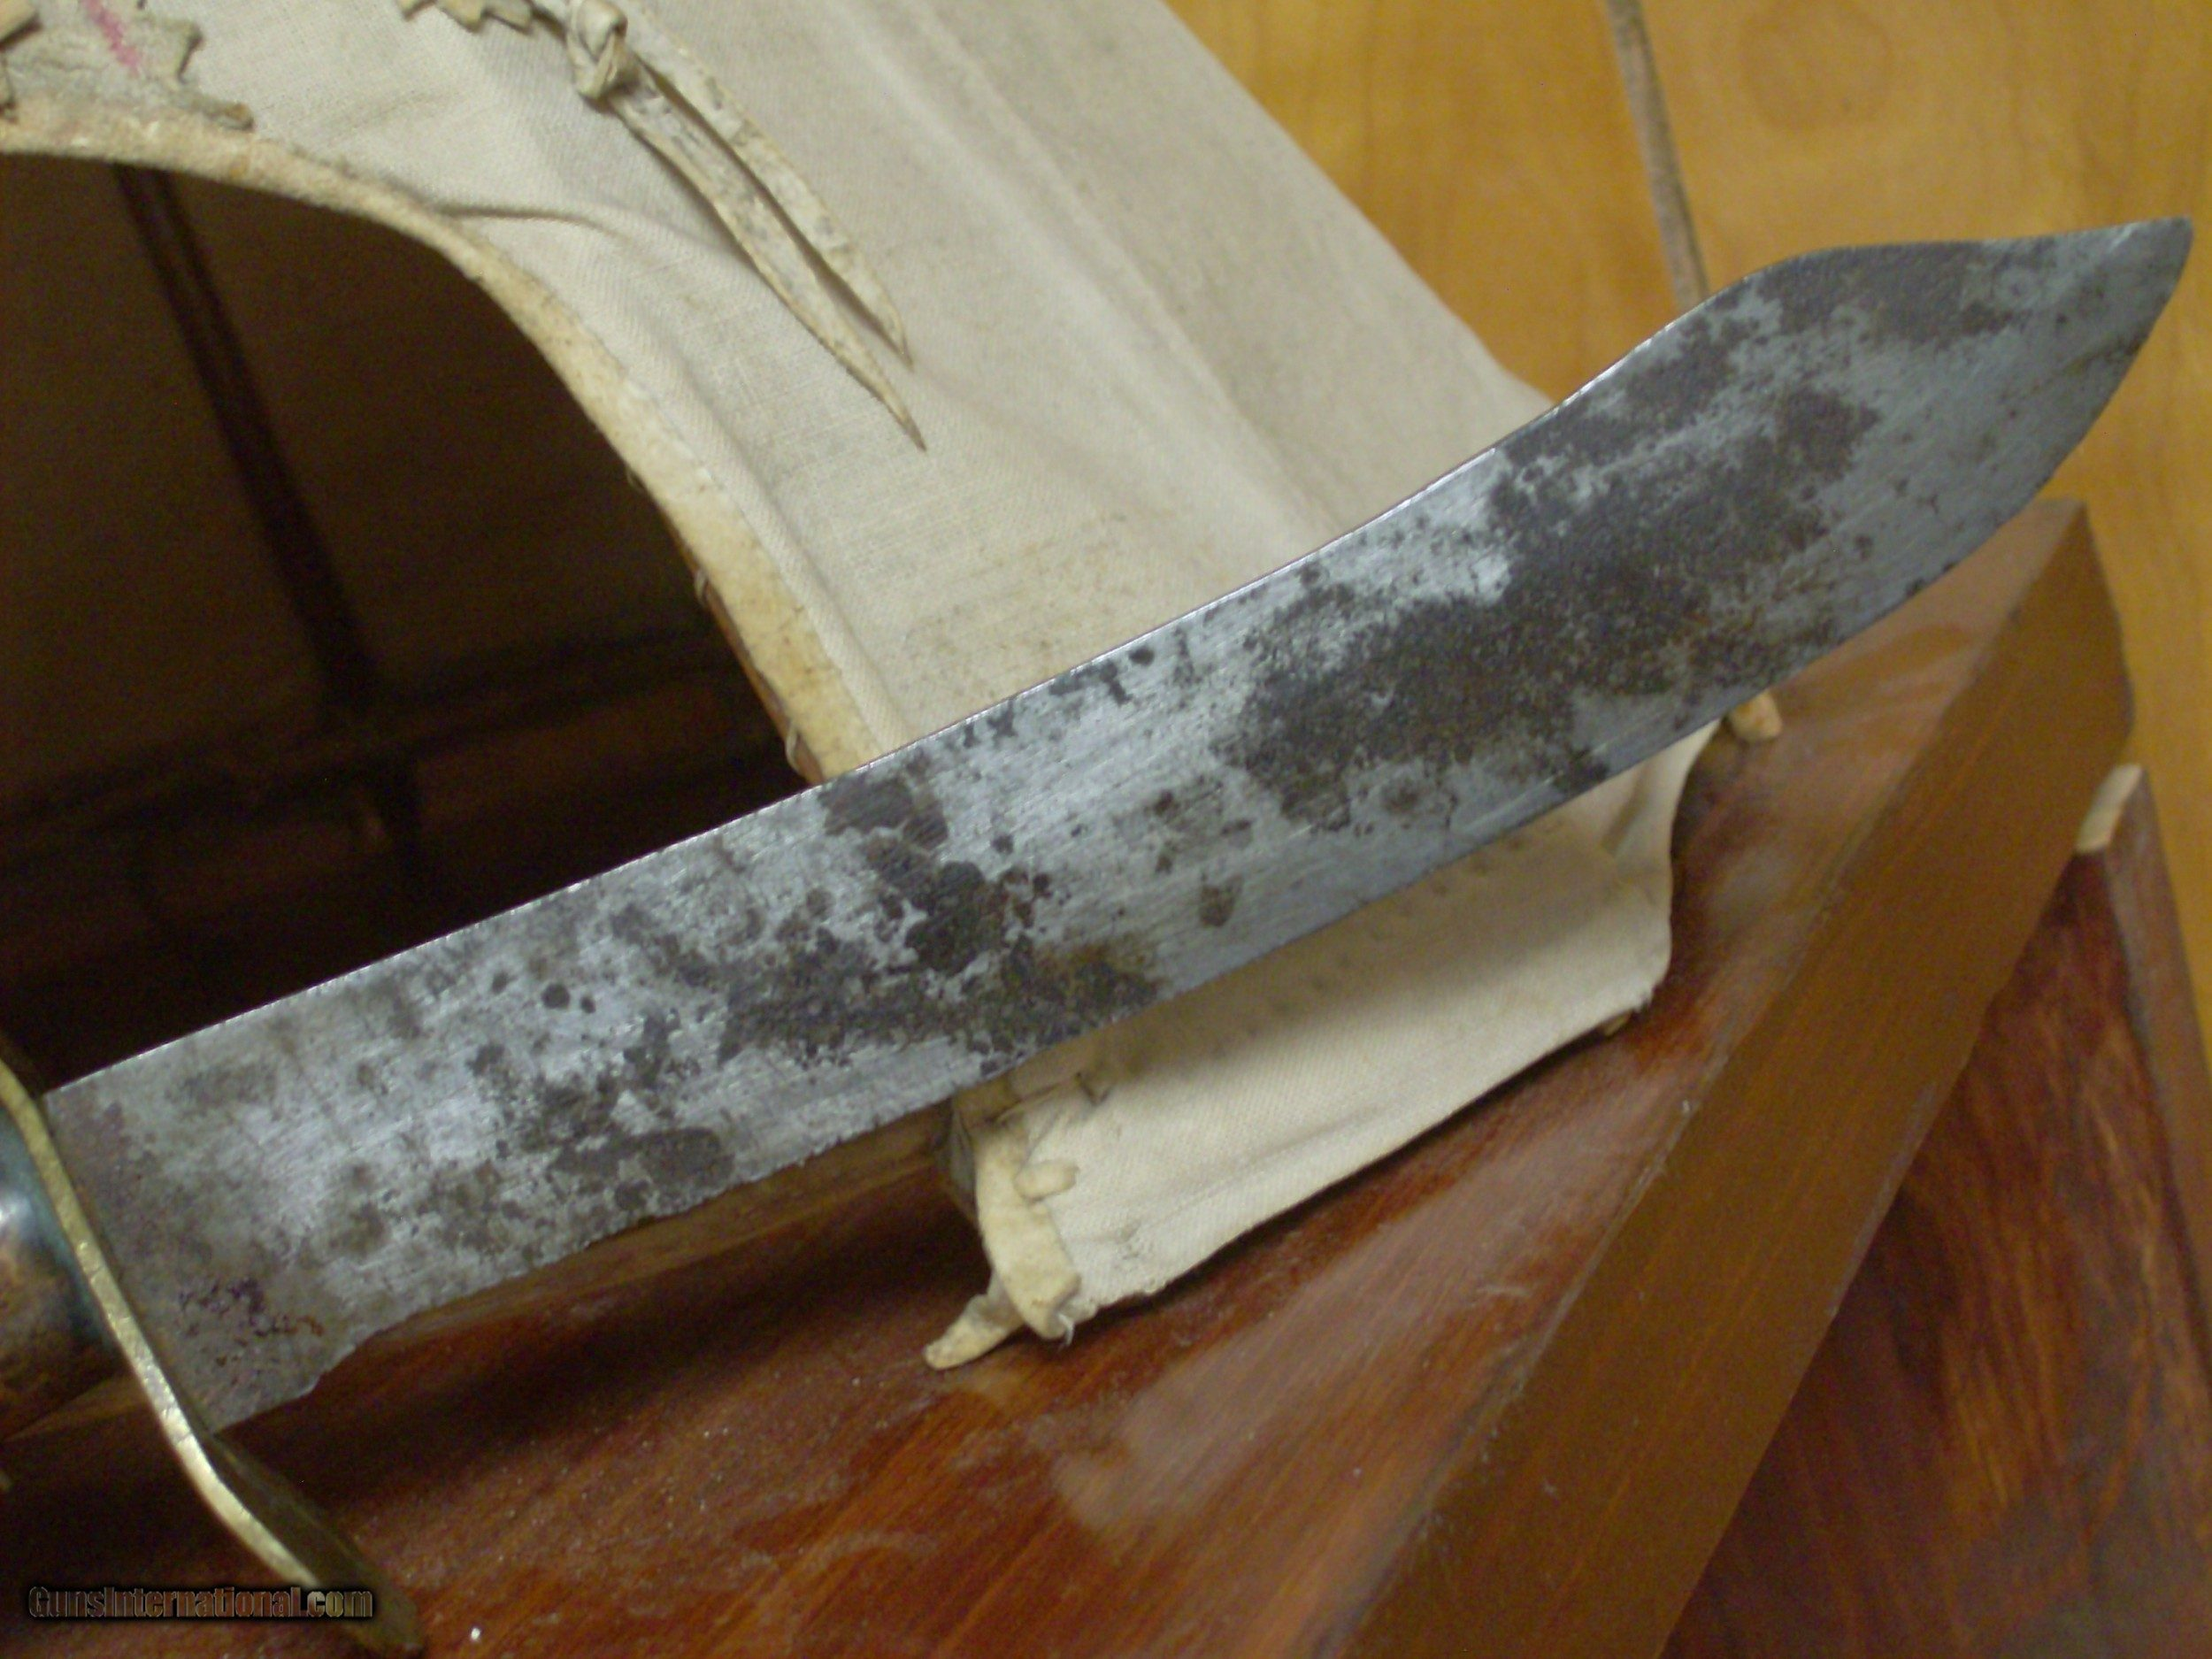 Early 19th century American Mountain Man/Frontiersman knife